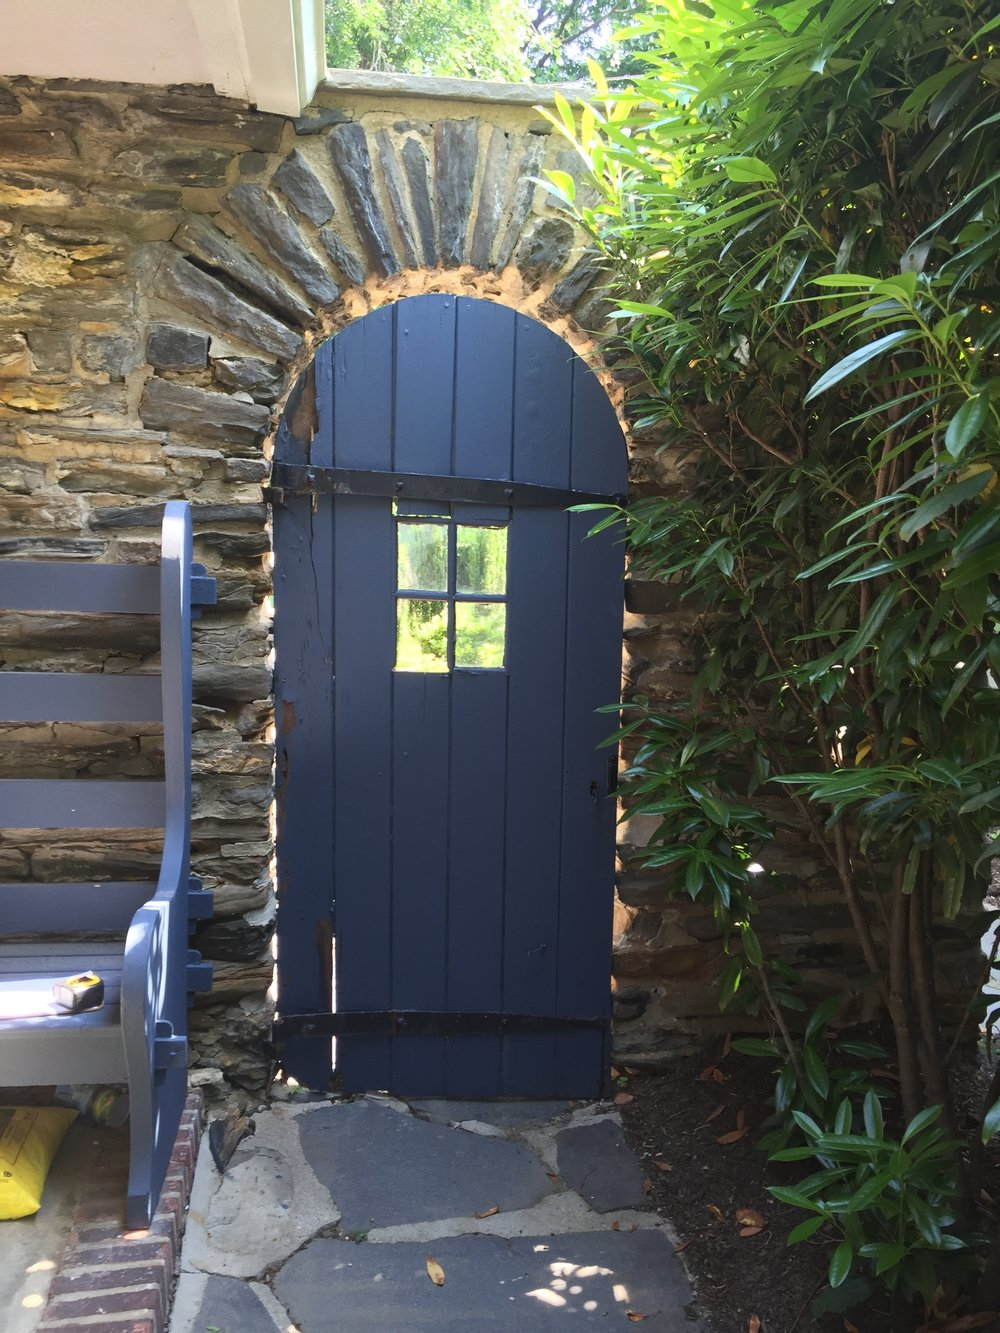 Client had a garden door inside a stone wall that divided the front and rear yards. It had become dilapidated over the years, so they asked me to build a new door to replicate it.